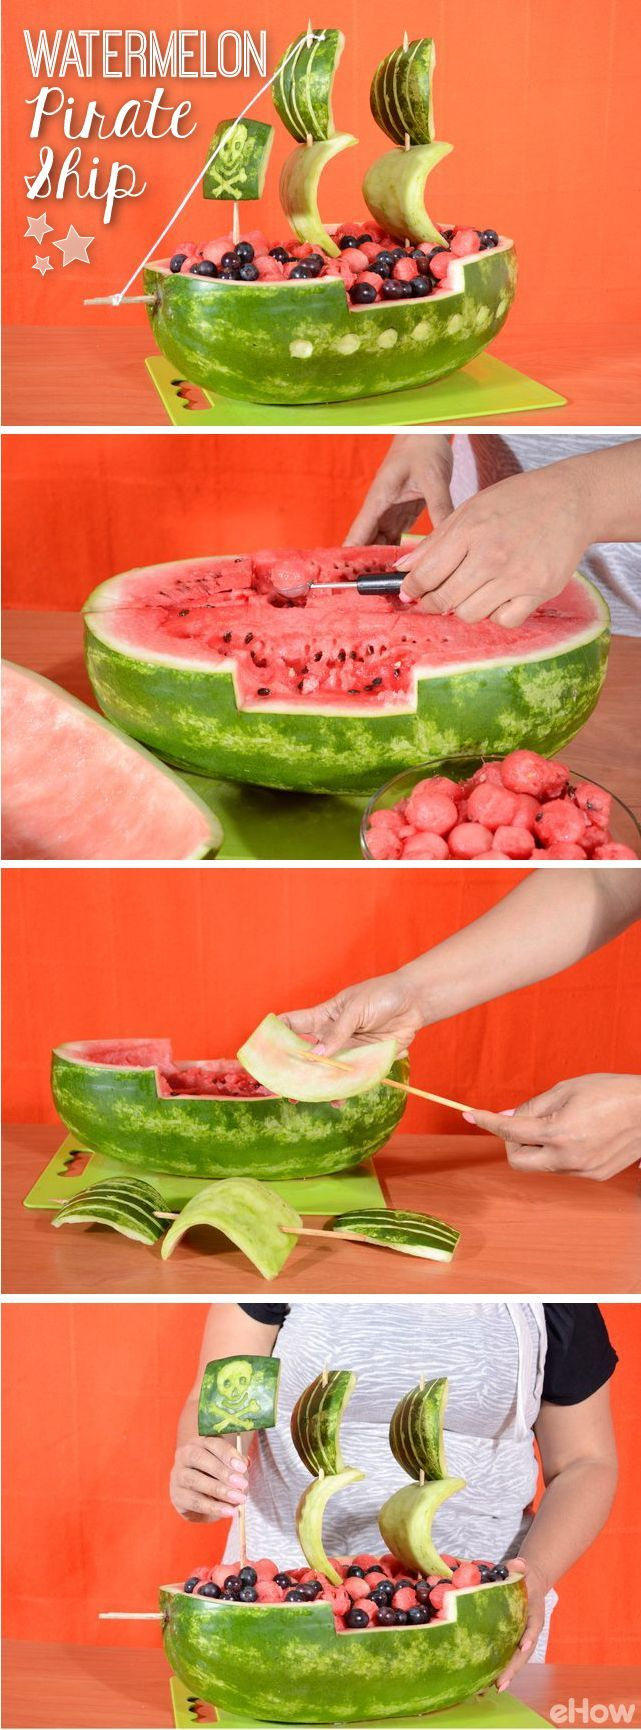 Carving into watermelons is a great way to serve fruit all summer long. And this Pirate Ship is awesome and really easy to make! http://www.ehow.com/how_8237303_carve-watermelon-pirate-ship.html?utm_source=pinterest.com&utm_medium=referral&utm_content=inline&utm_campaign=fanpage                                                                                                                                                                                 More